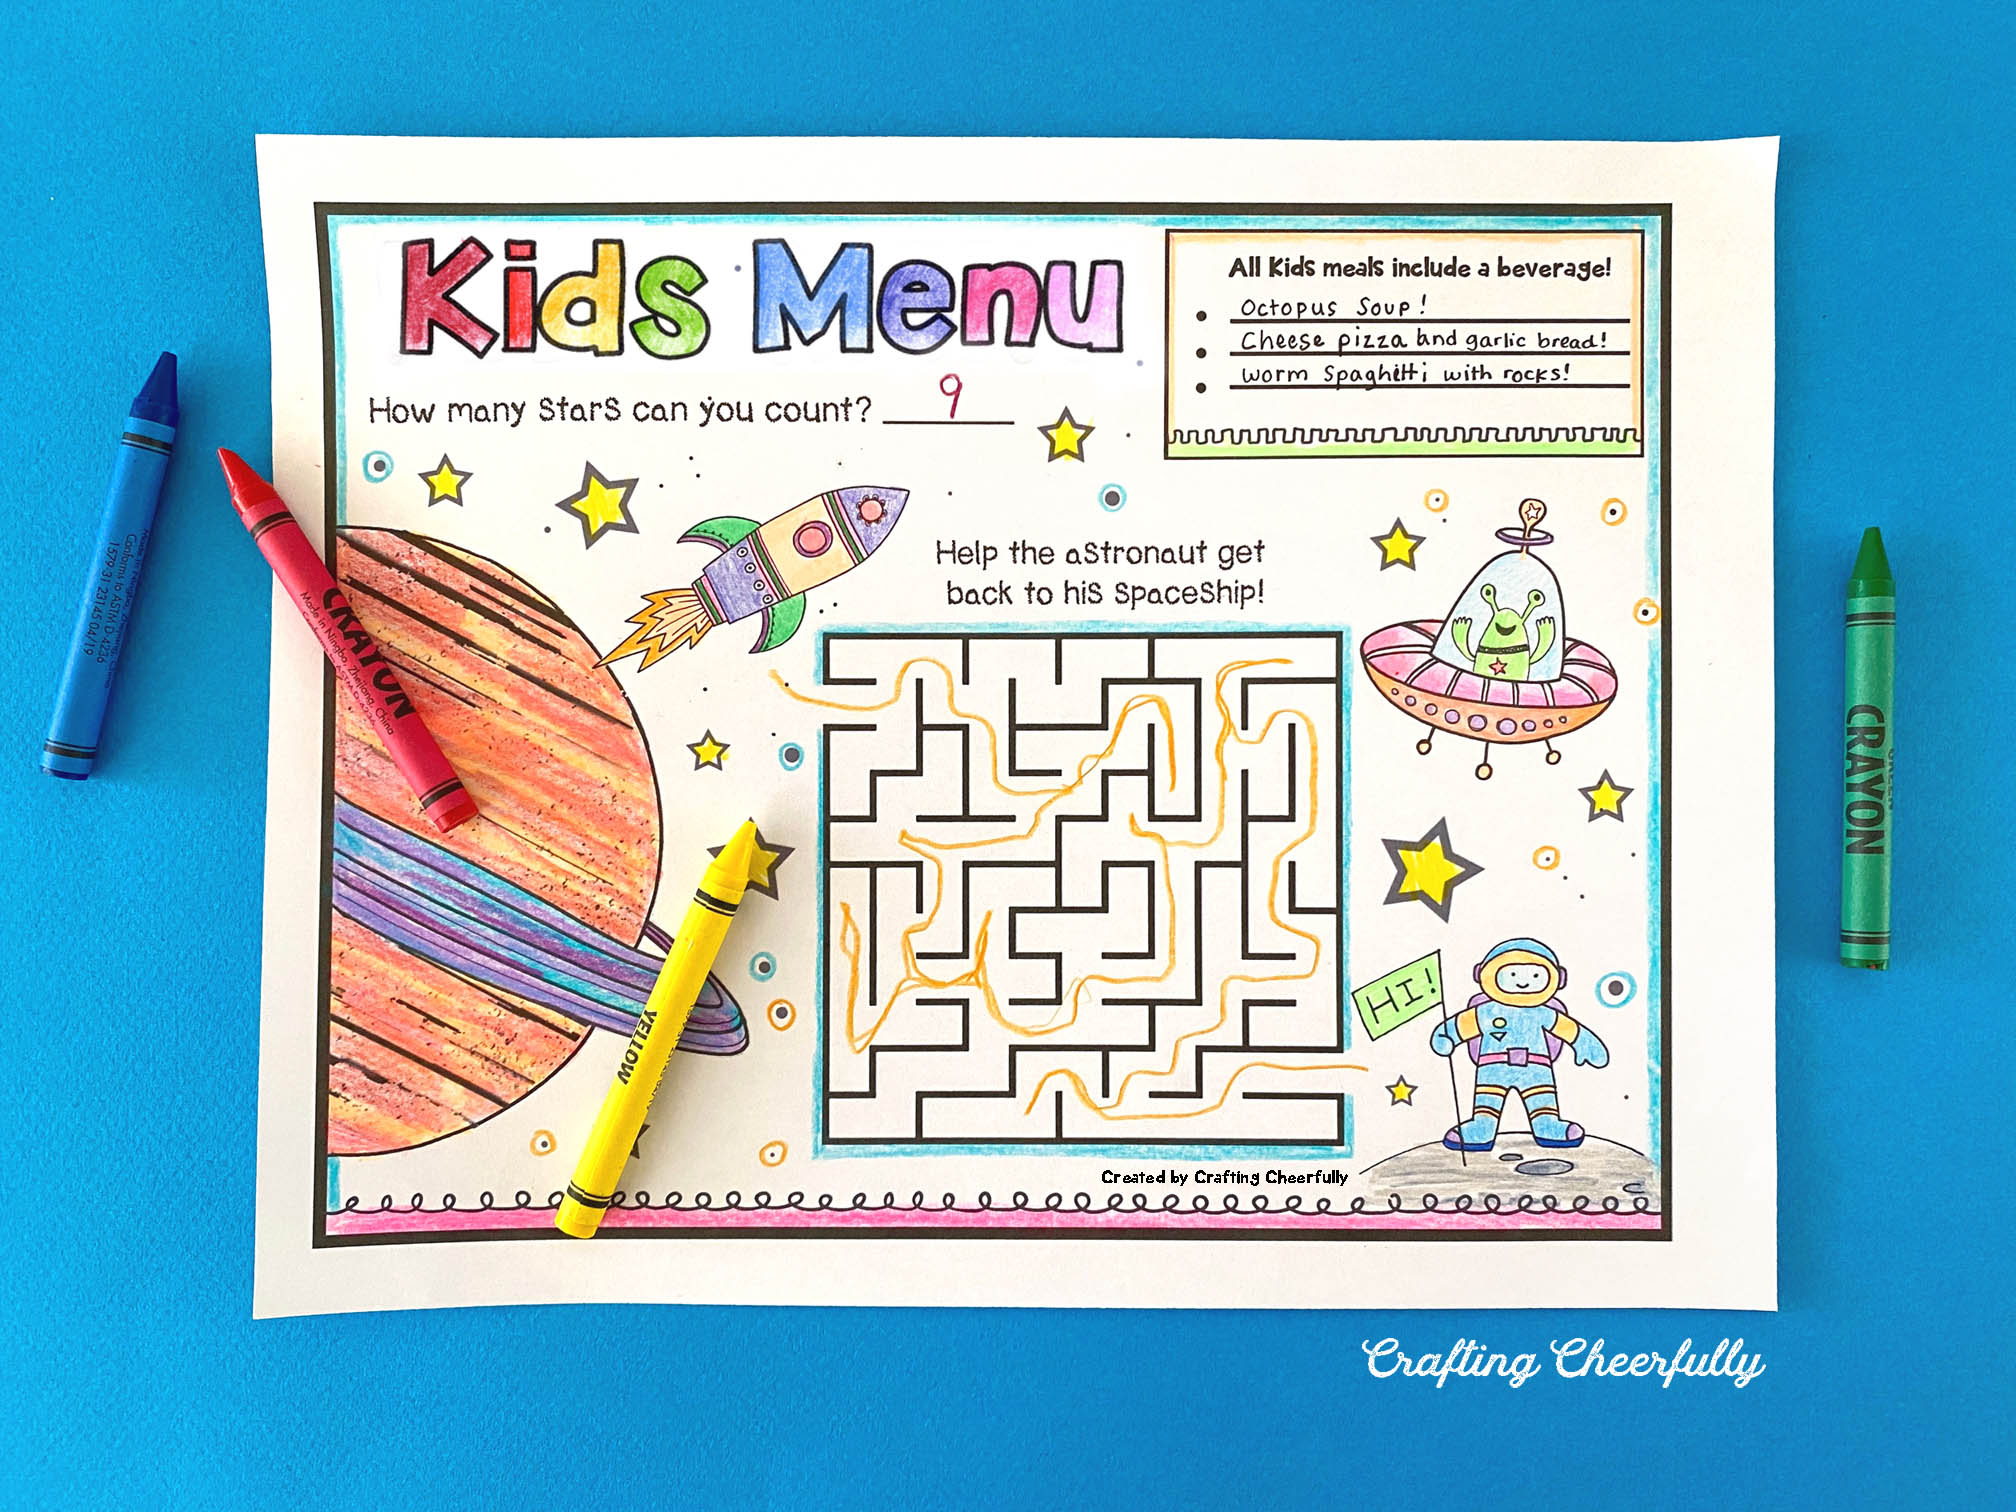 Printable kids menu with fun activities sits on a blue table with crayons.